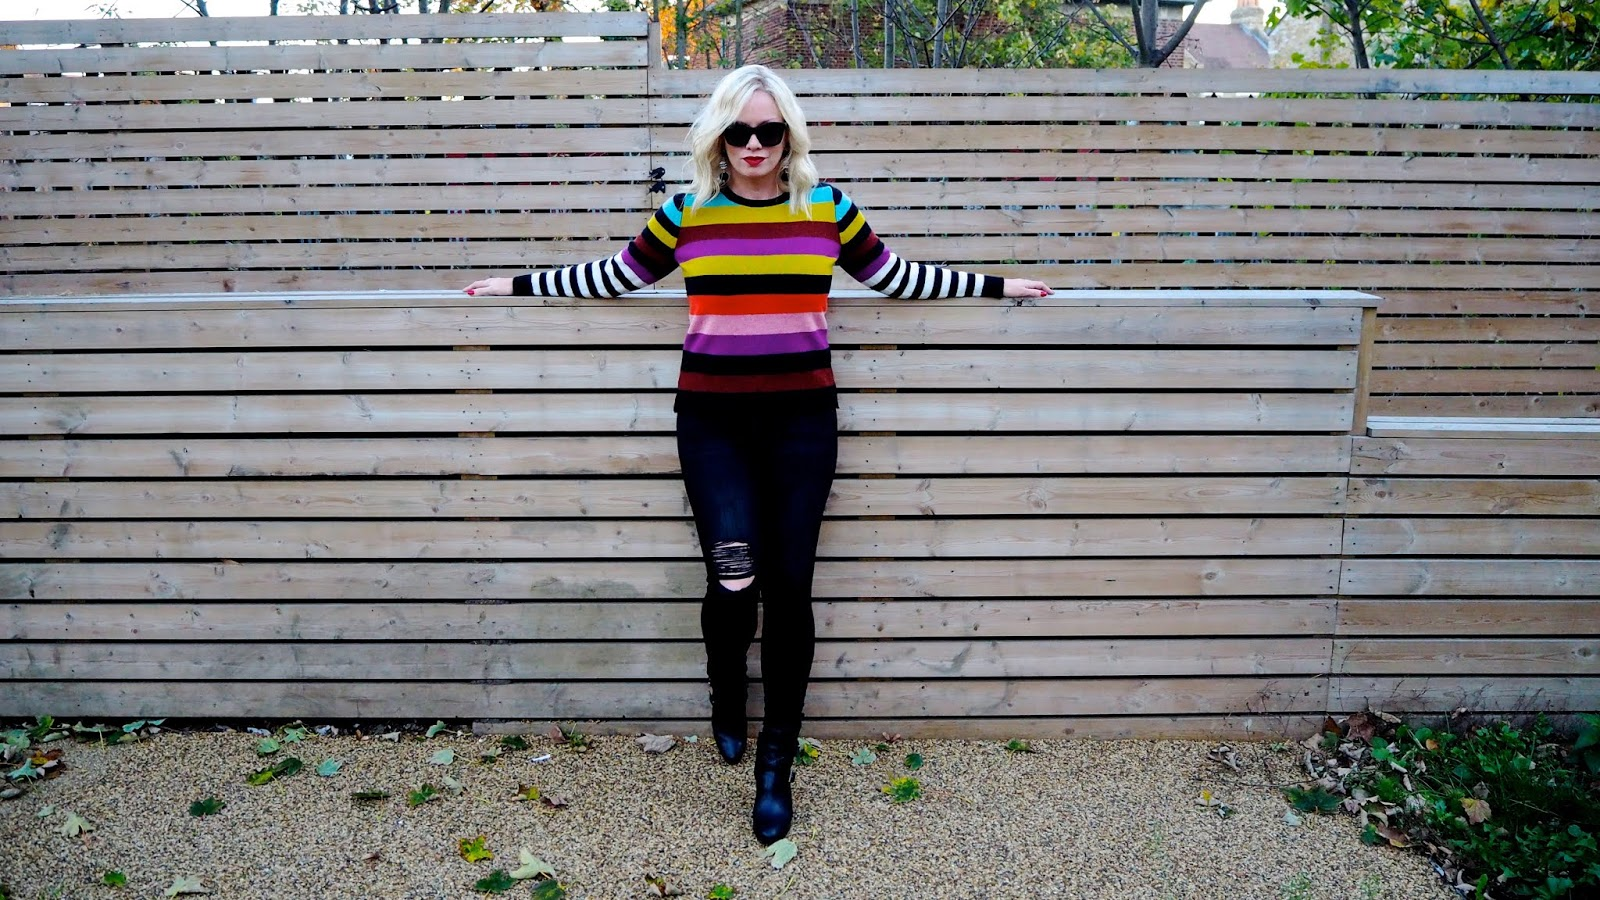 colourful, striped sweater and black ripped jeans standing in front of a wooden fence